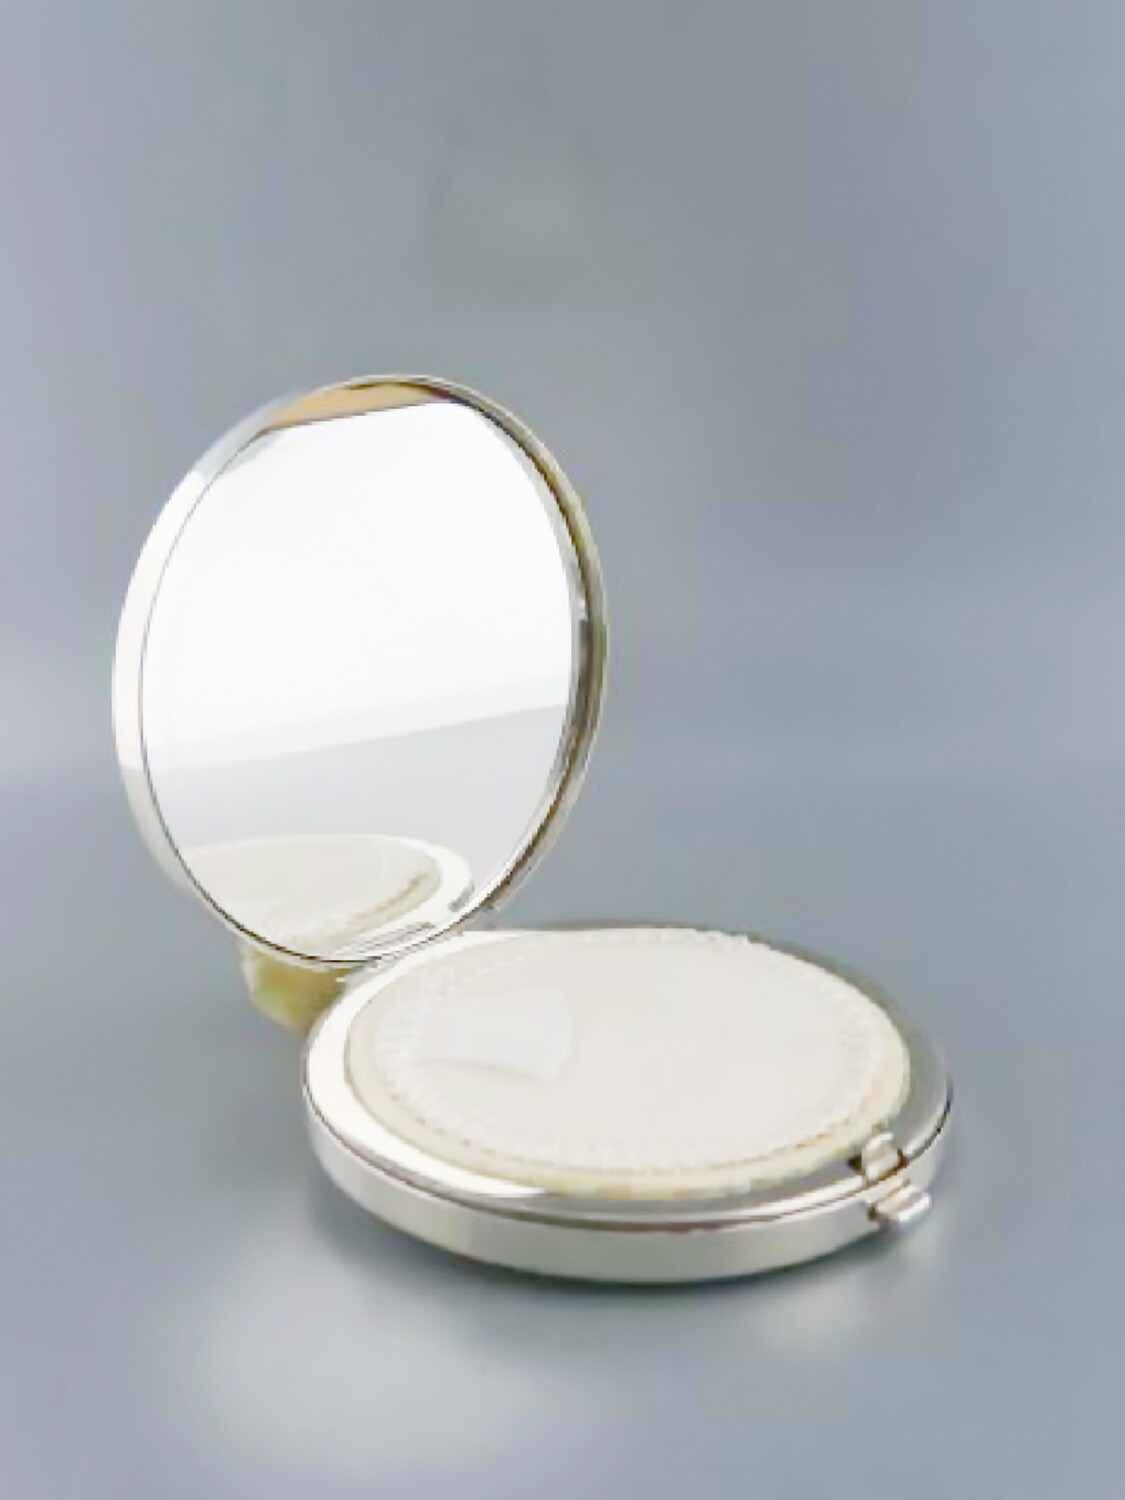 Vintage Tiffany Solid Silver Mirrored Compact Powder Mirror with Box